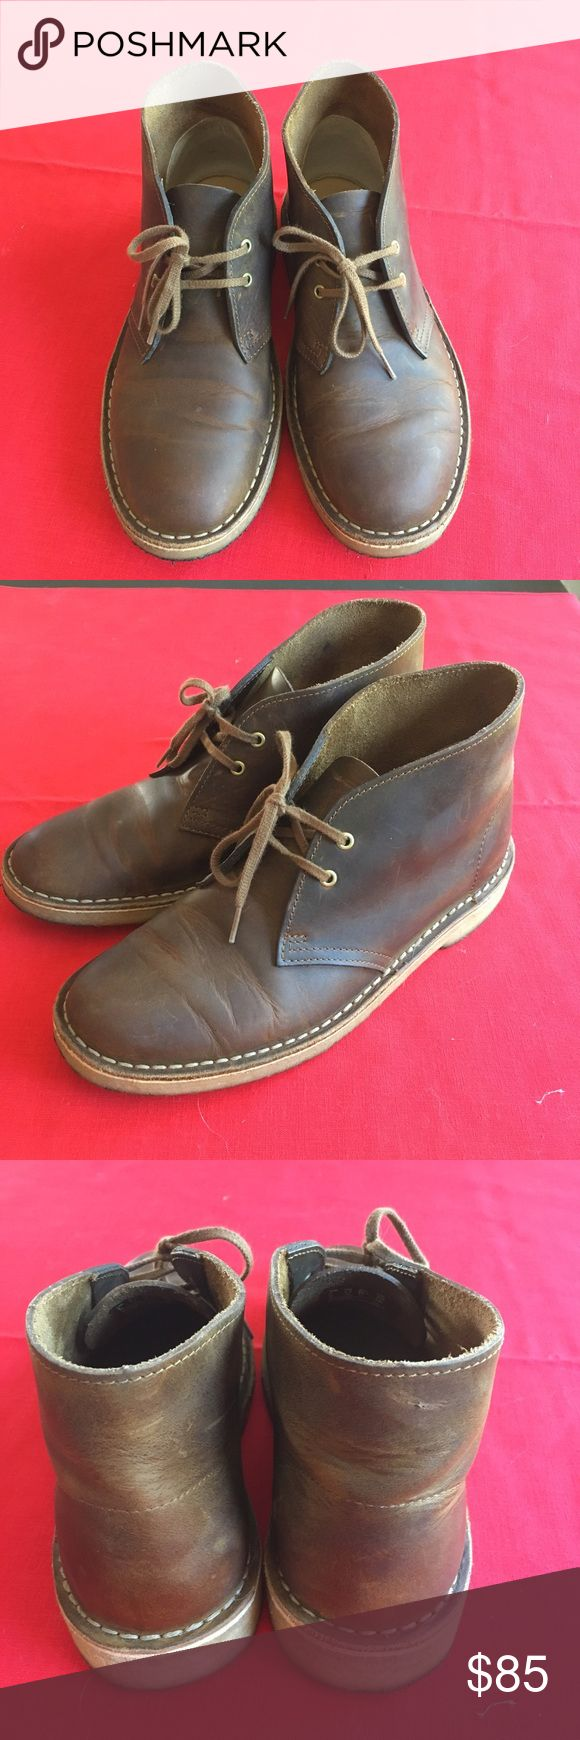 Clarks Desert Boots, 8.5 Almost new Clarks Desert boots, beeswax leather. Women's 8.5, men's 7 and in excellent condition. Will ship in original box. I love these but they were ultimately too small on me. Only wore there about 3-4 times. Clarks Shoes Ankle Boots & Booties